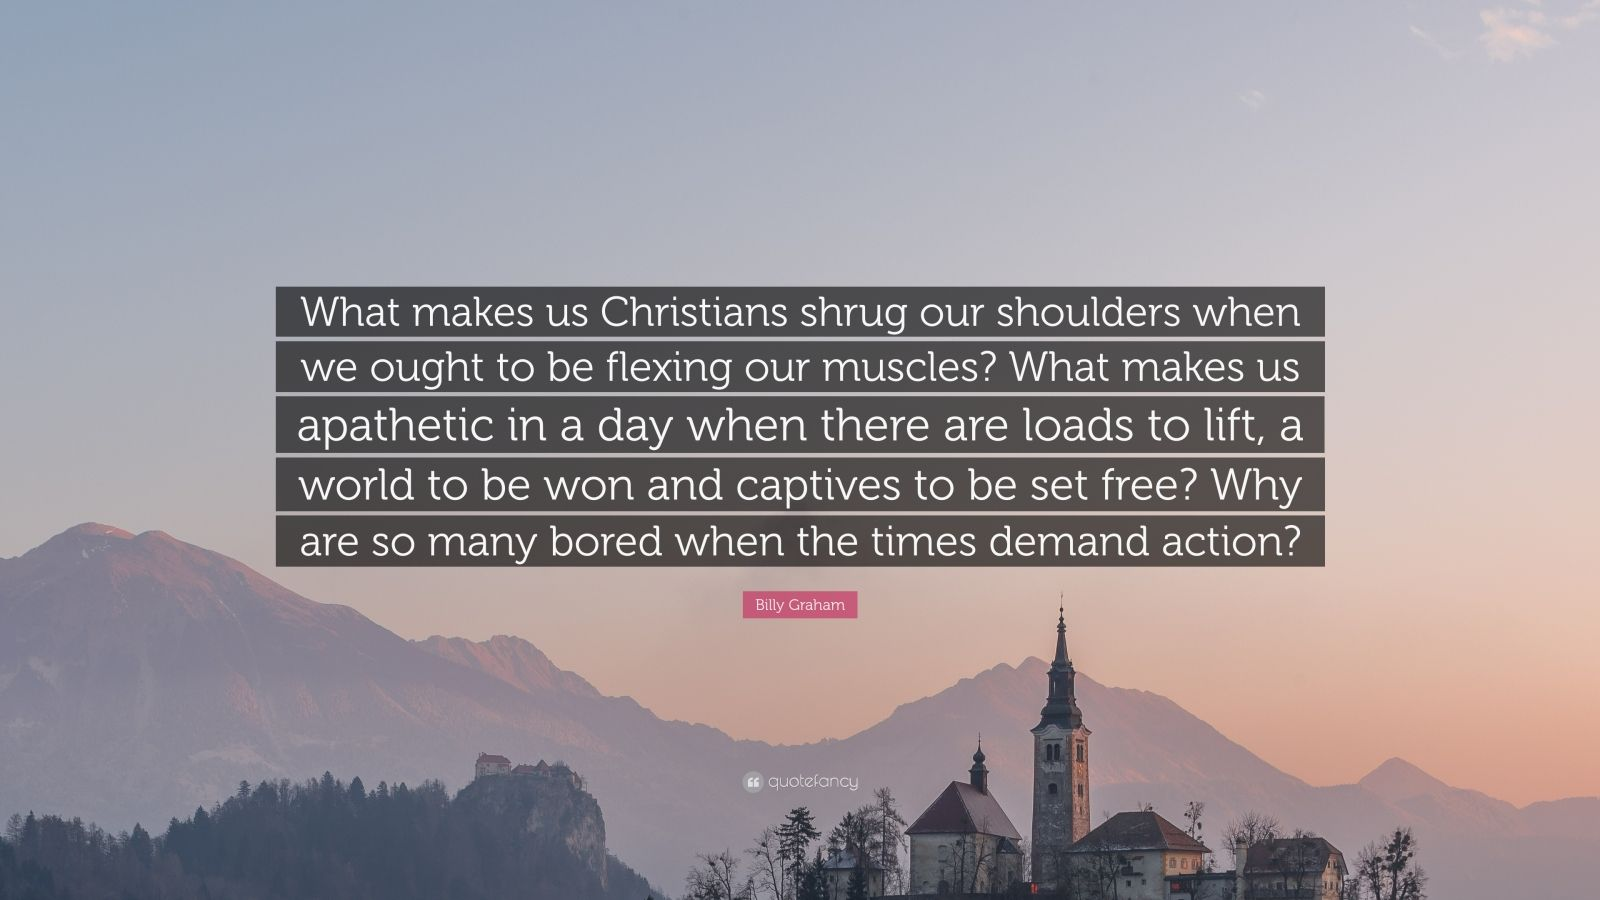 "Billy Graham Quote: ""What makes us Christians shrug our shoulders when we ought to be flexing our muscles? What makes us apathetic in a day when there are loads to lift, a world to be won and captives to be set free? Why are so many bored when the times demand action?"""